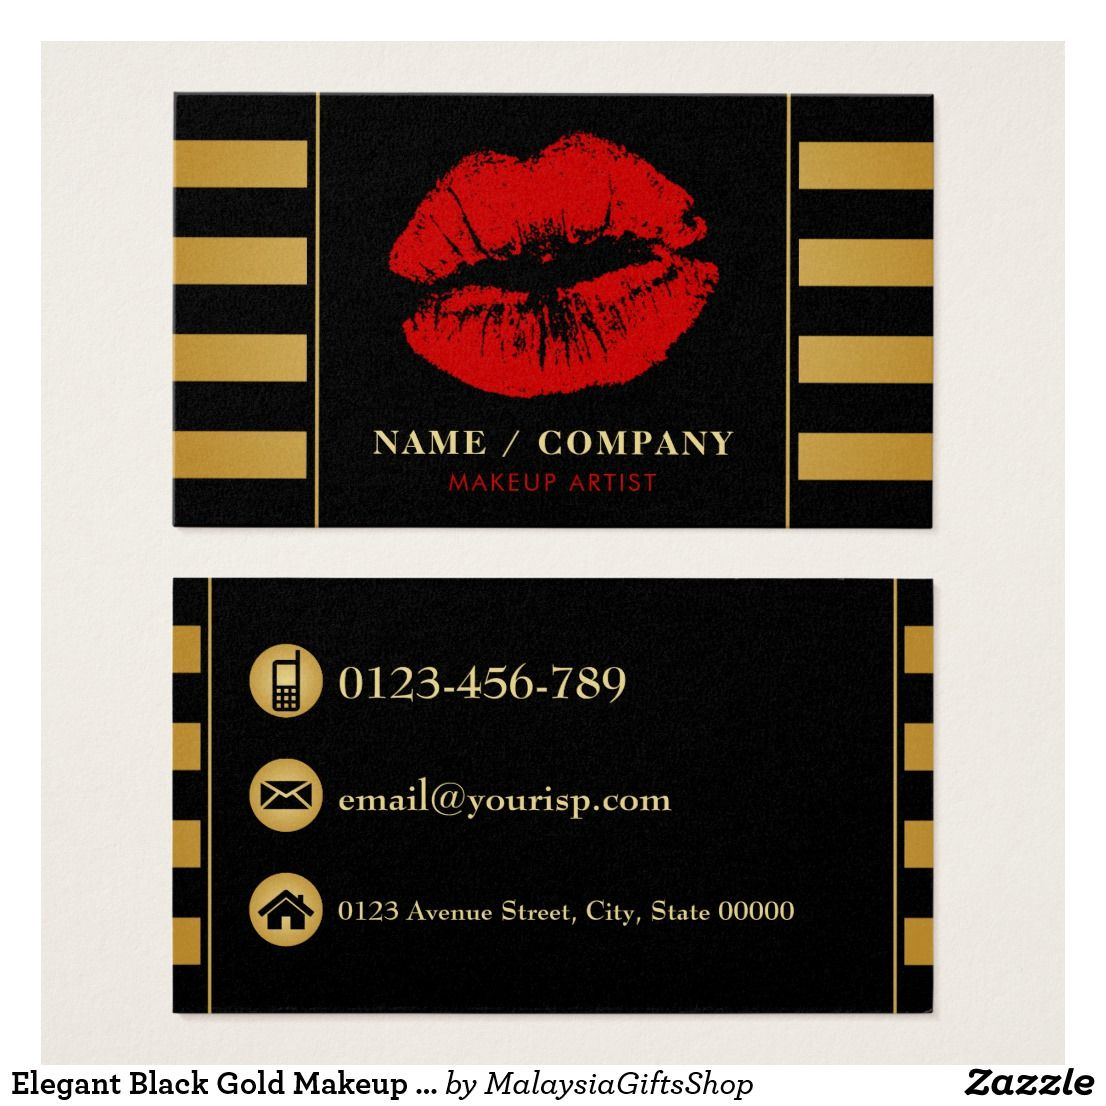 Elegant Black Gold Makeup Artist (Personalize) Business Card ...